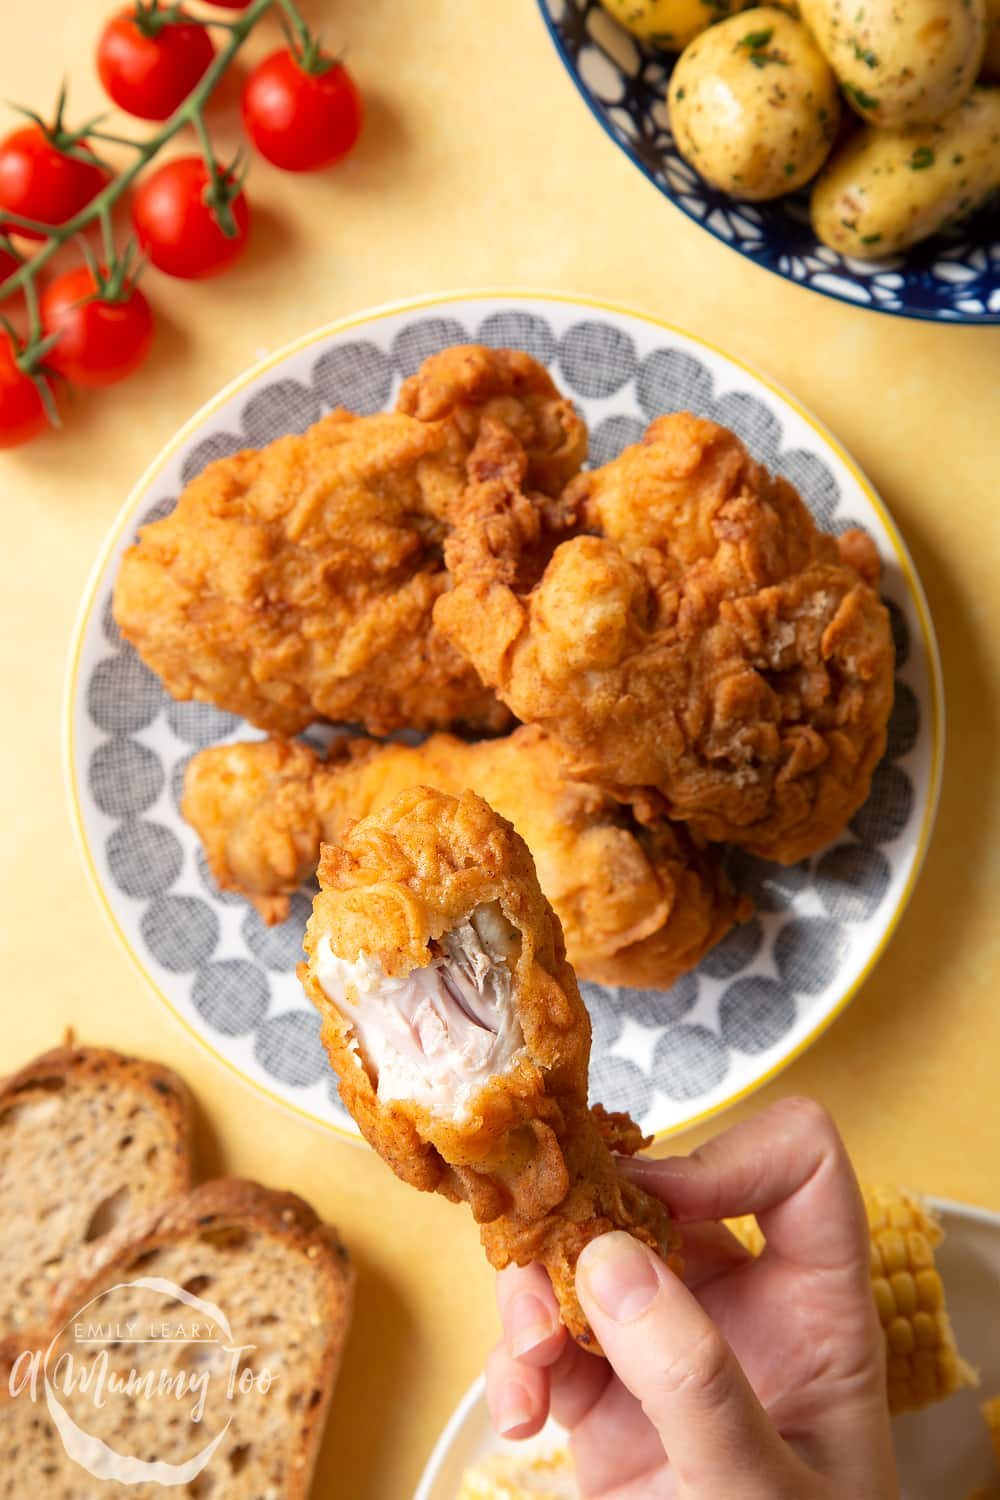 Gordon Ramsay's buttermilk fried chicken arranged on a plate, surrounded by tomatoes, potatoes, bread and corn on the cob. A hand holds a well-coated drumstick, with the juicy chicken showing underneath the seasoned coating.